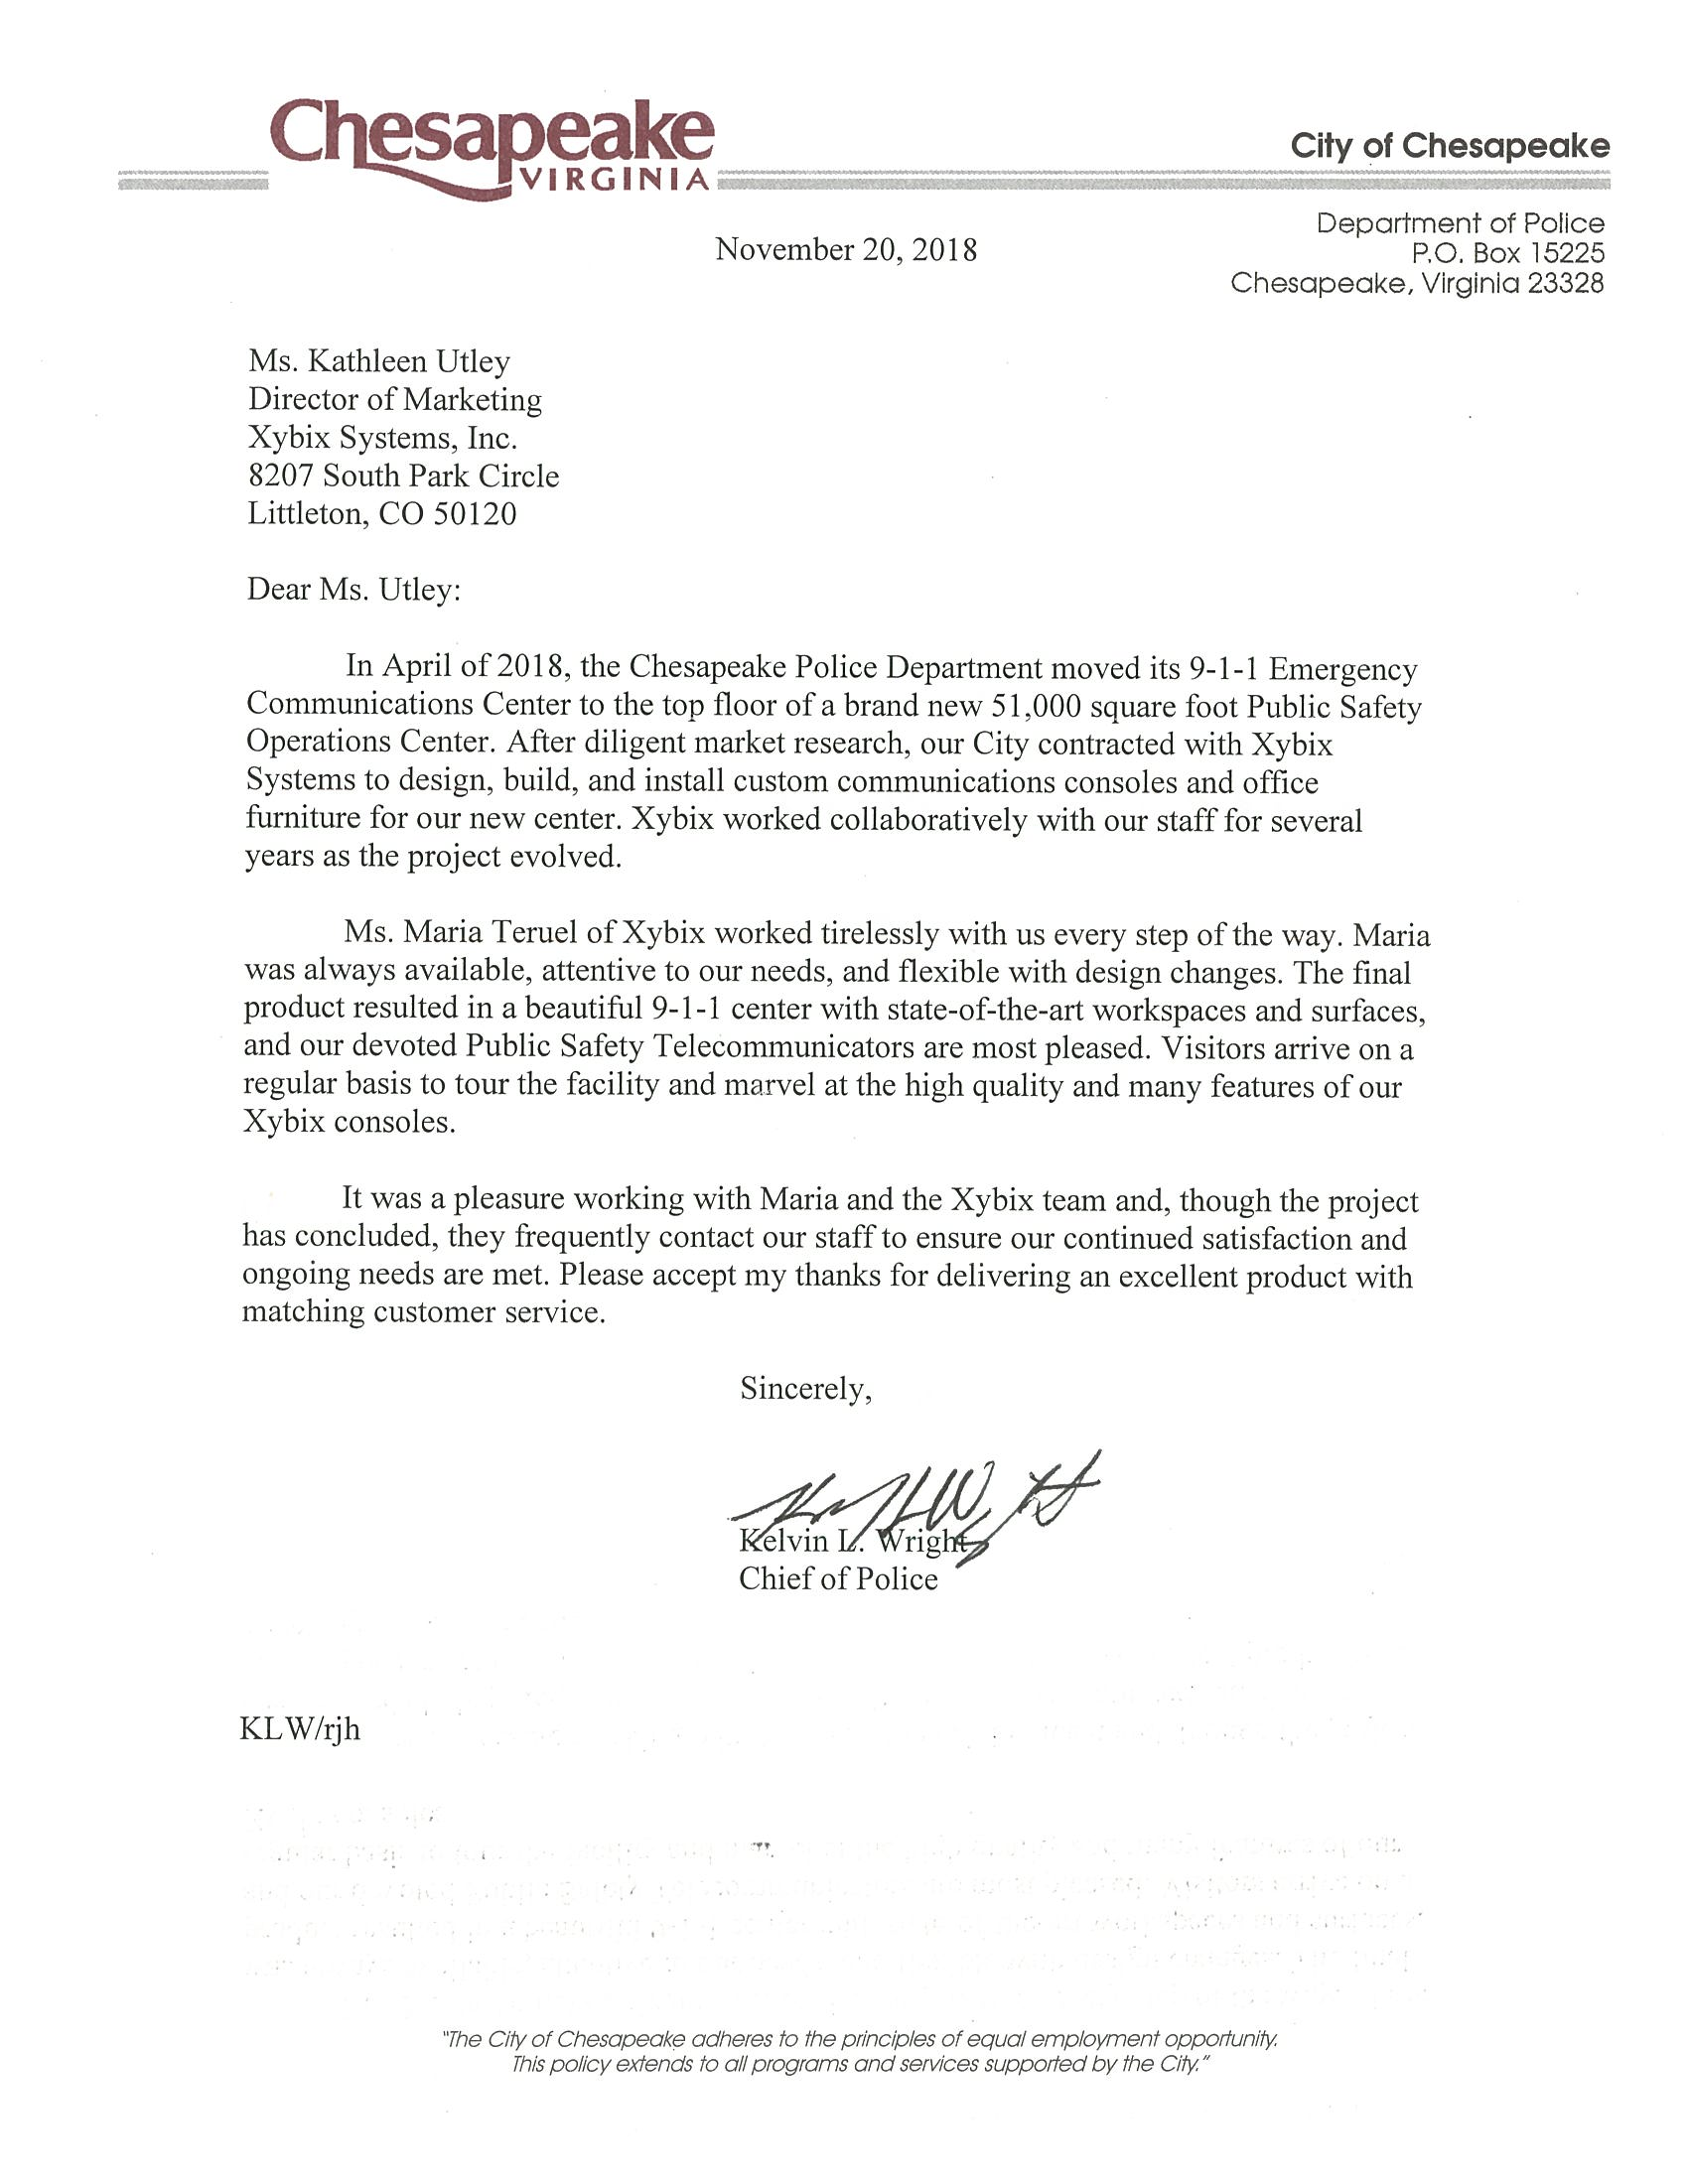 City of Chesapeake Police - Testimonial Letter